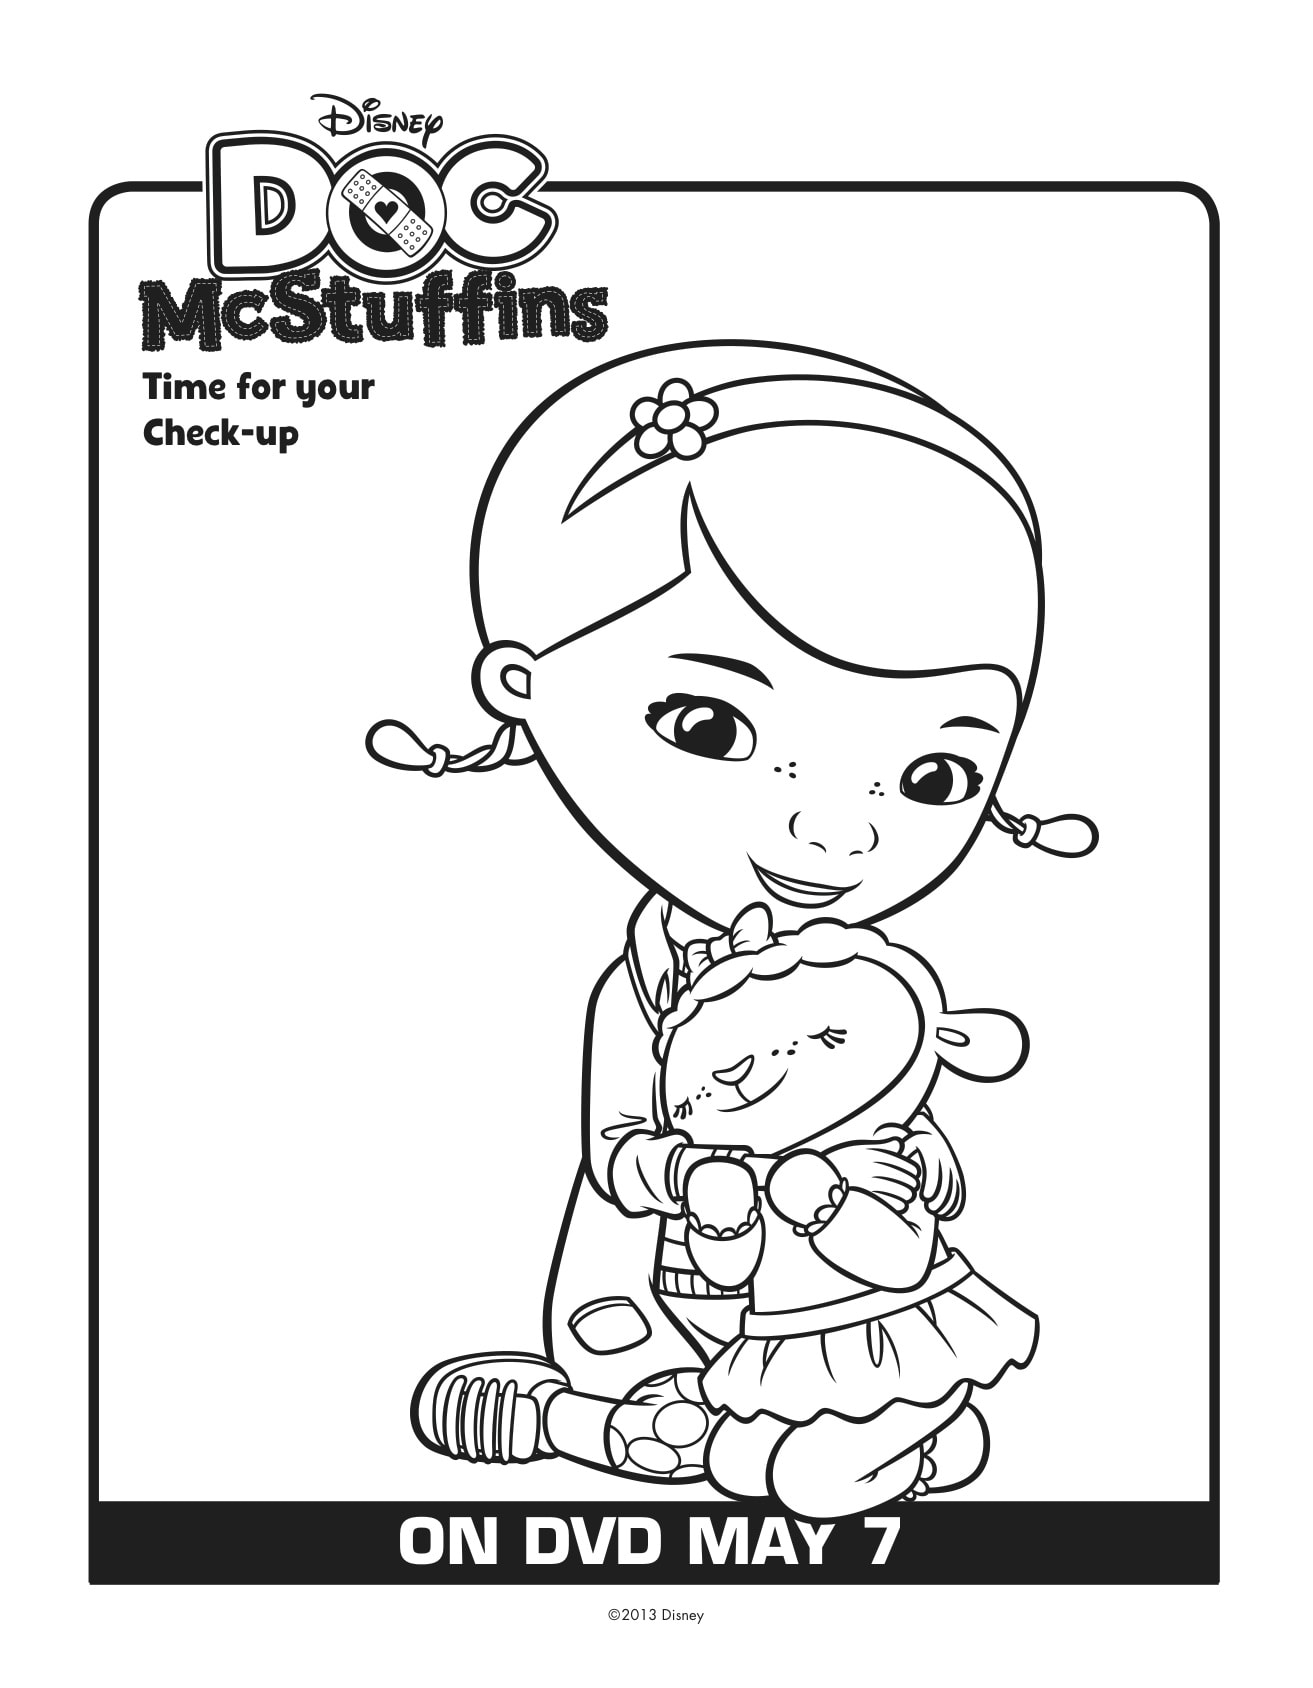 Luscious image with regard to doc mcstuffins printable coloring pages